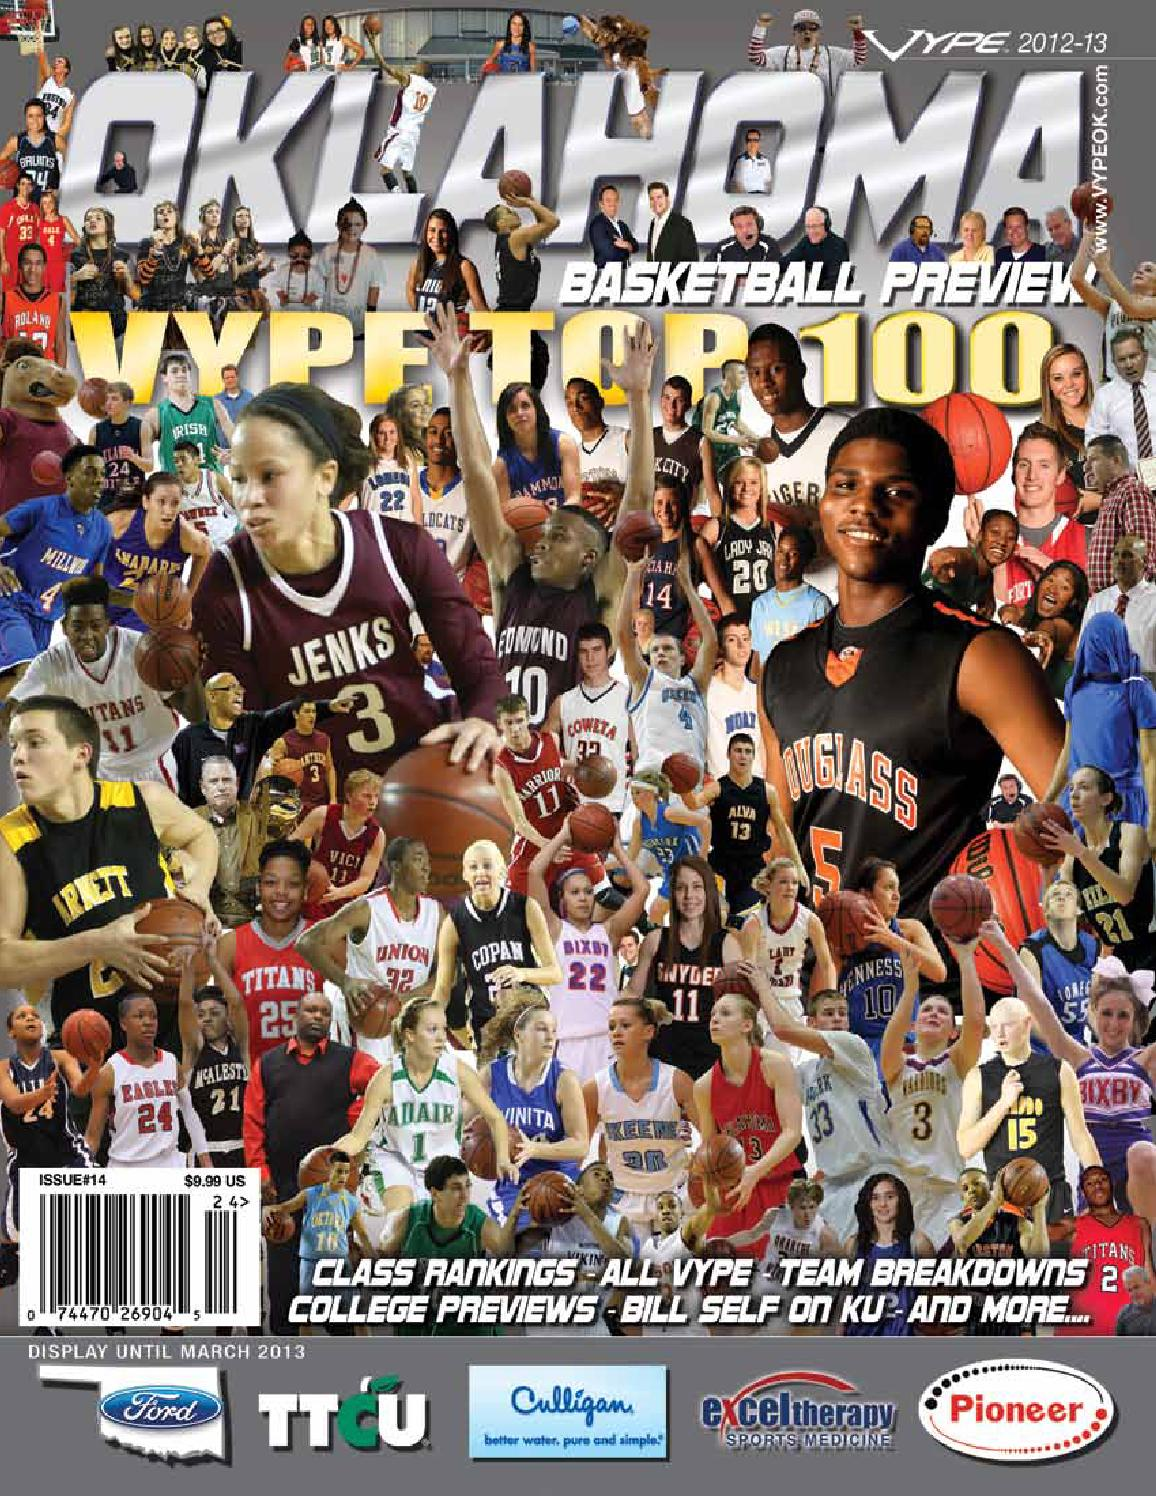 52dacd36f Oklahoma Basketball Preview - November Issue by Austin Chadwick - issuu